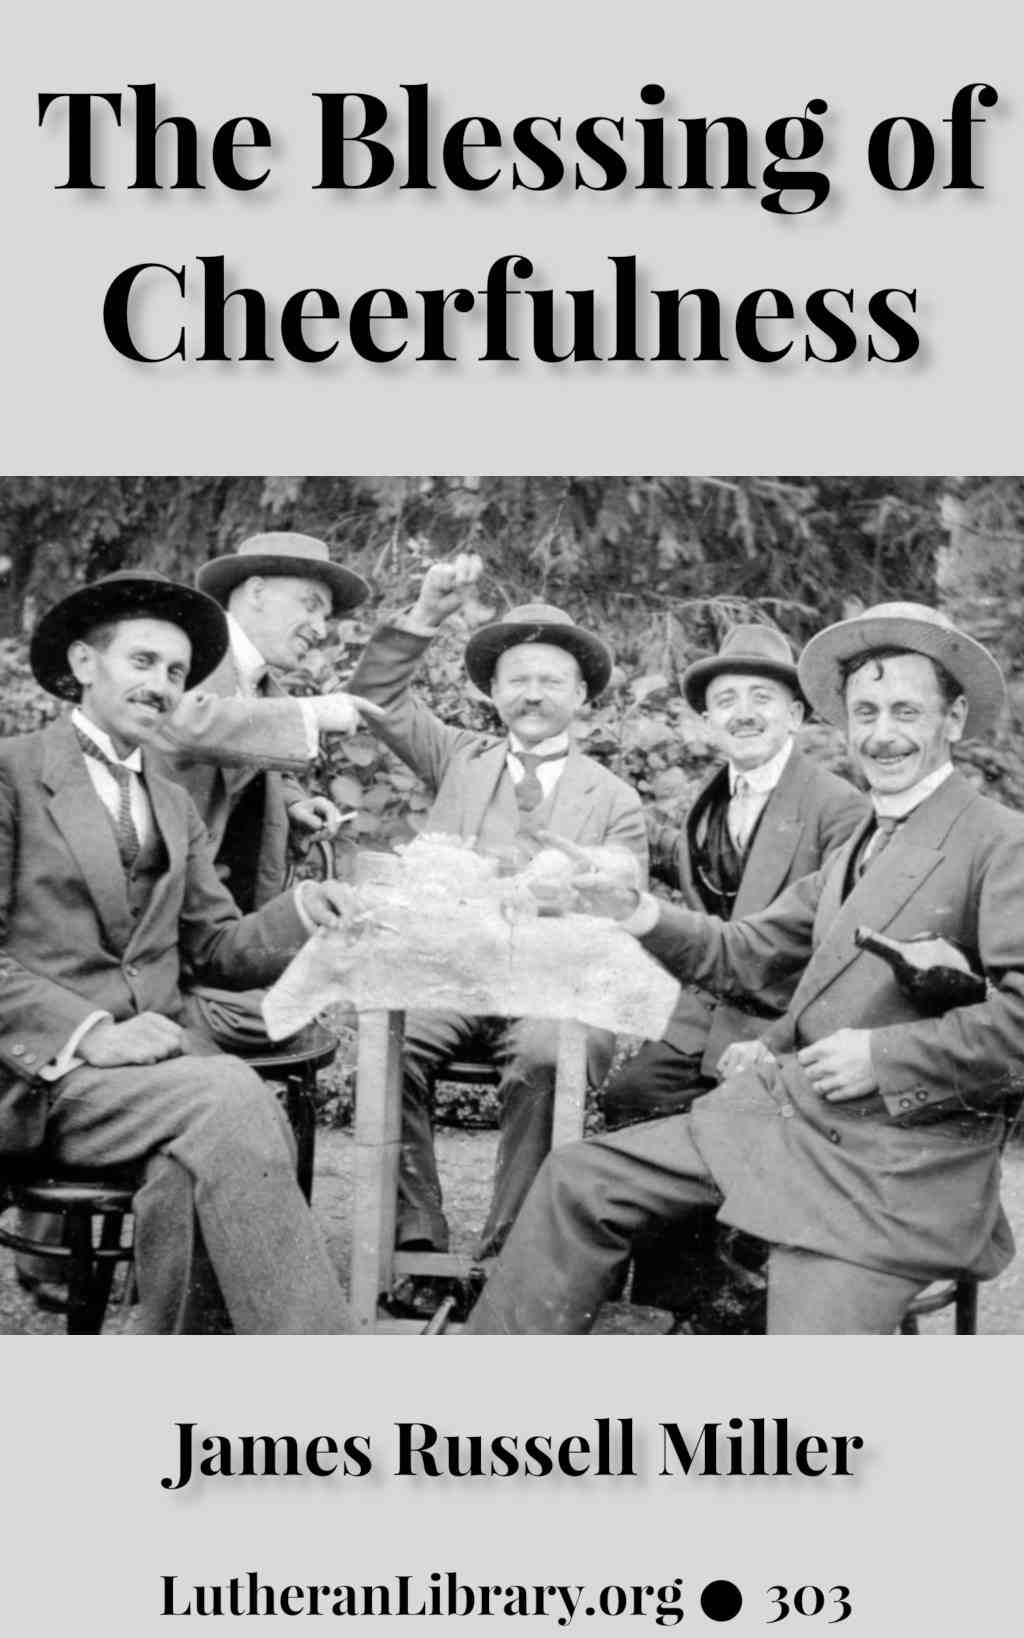 The Blessing of Cheerfulness by James Russell Miller